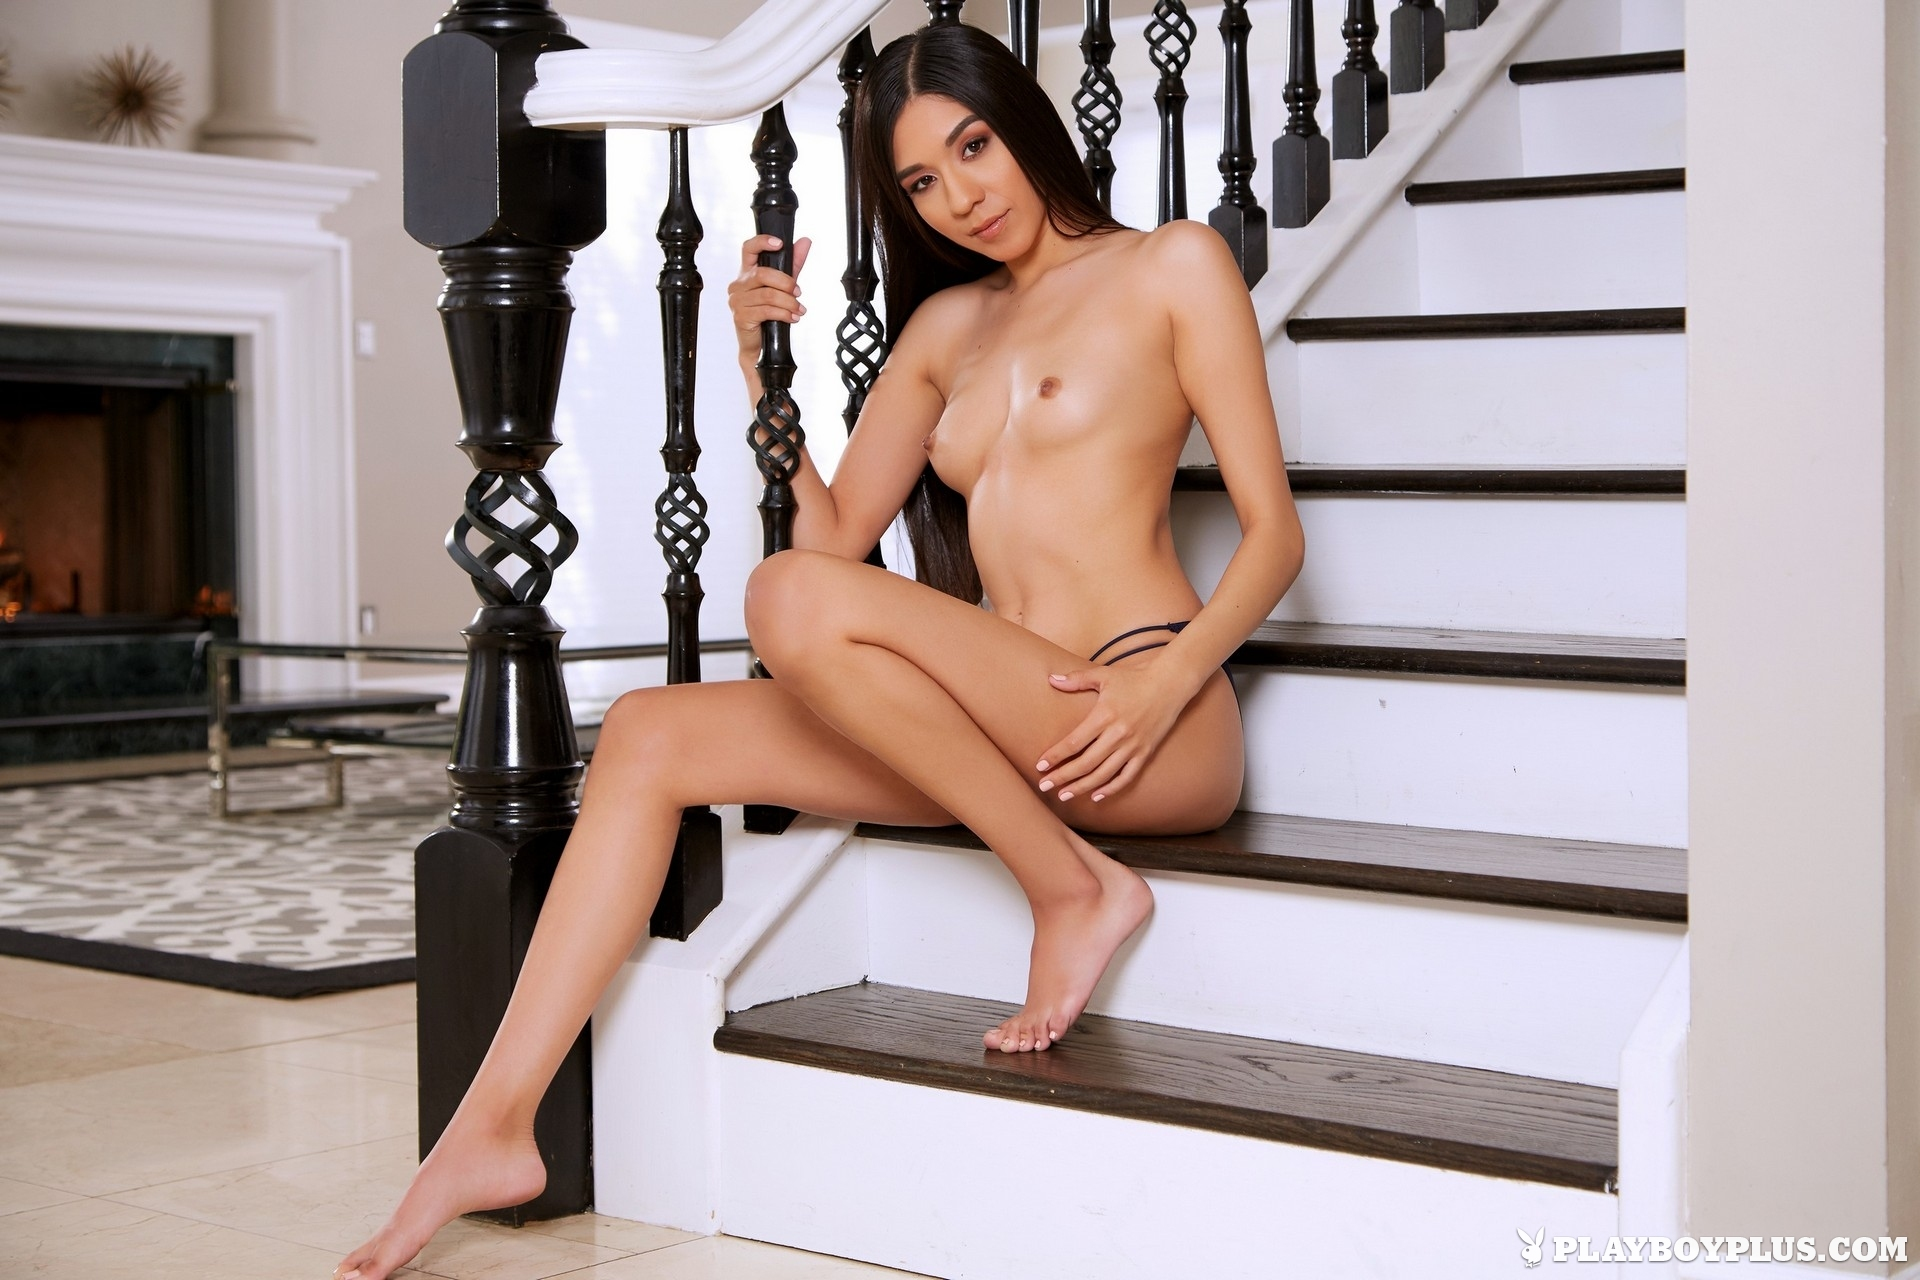 Playboy Plus Victoria Antoinette In Soft Approach (8)